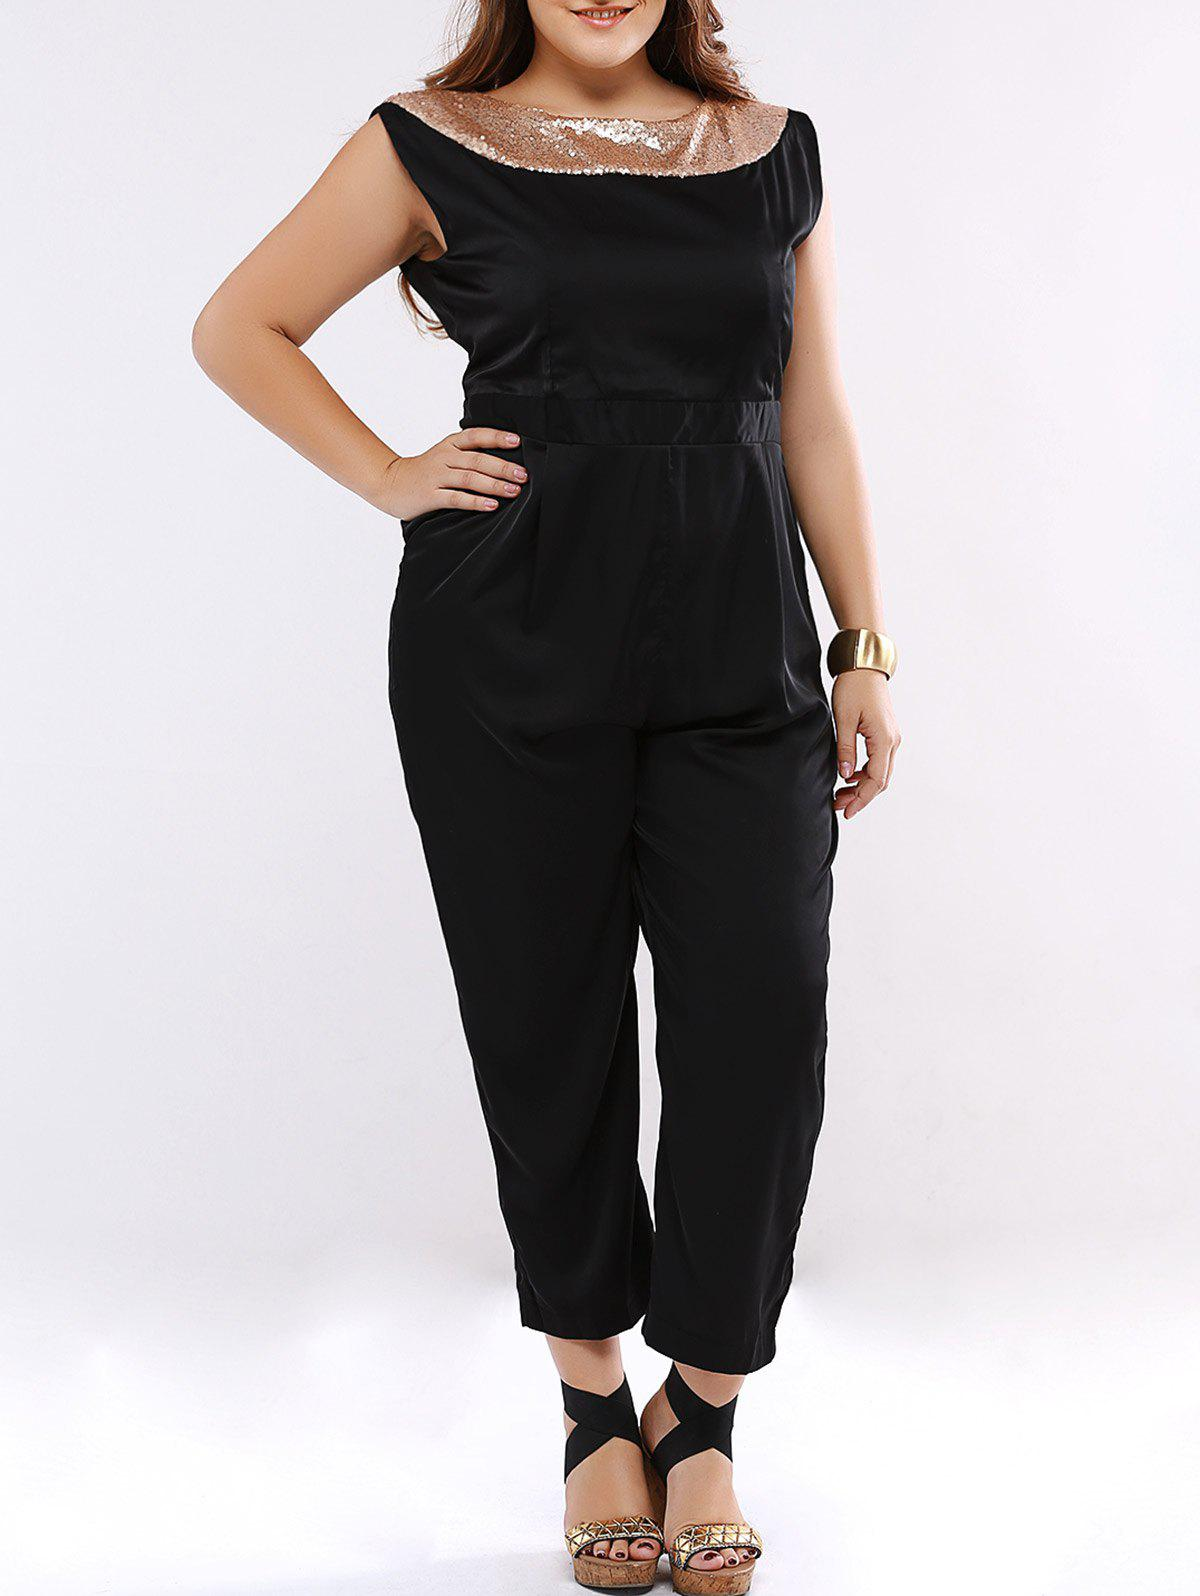 Plus Size Chic Sequined Embellished Jumpsuit